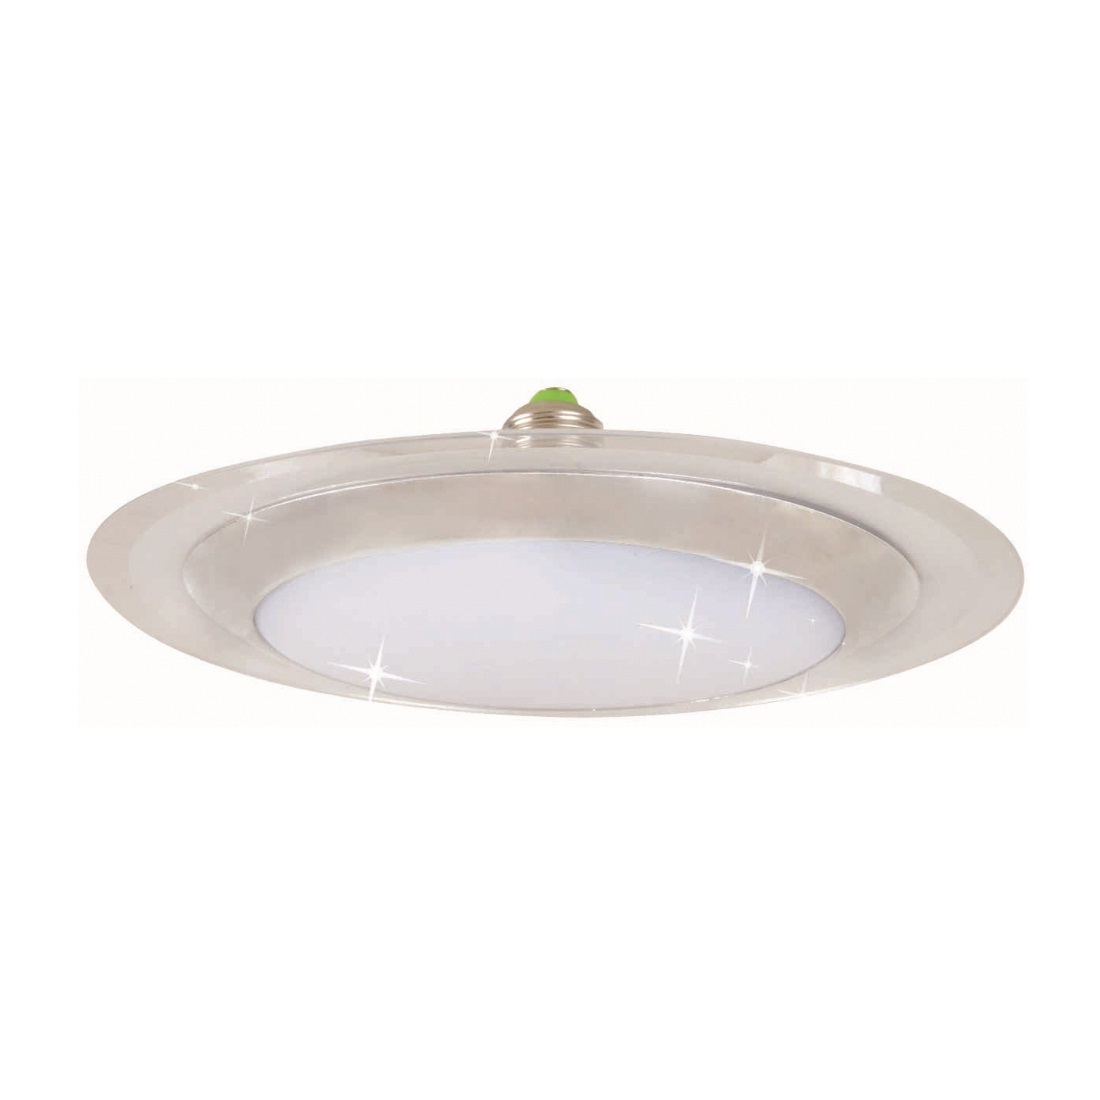 K2 GLOBAL KES404 - 24 Watt LED UFO Ampul